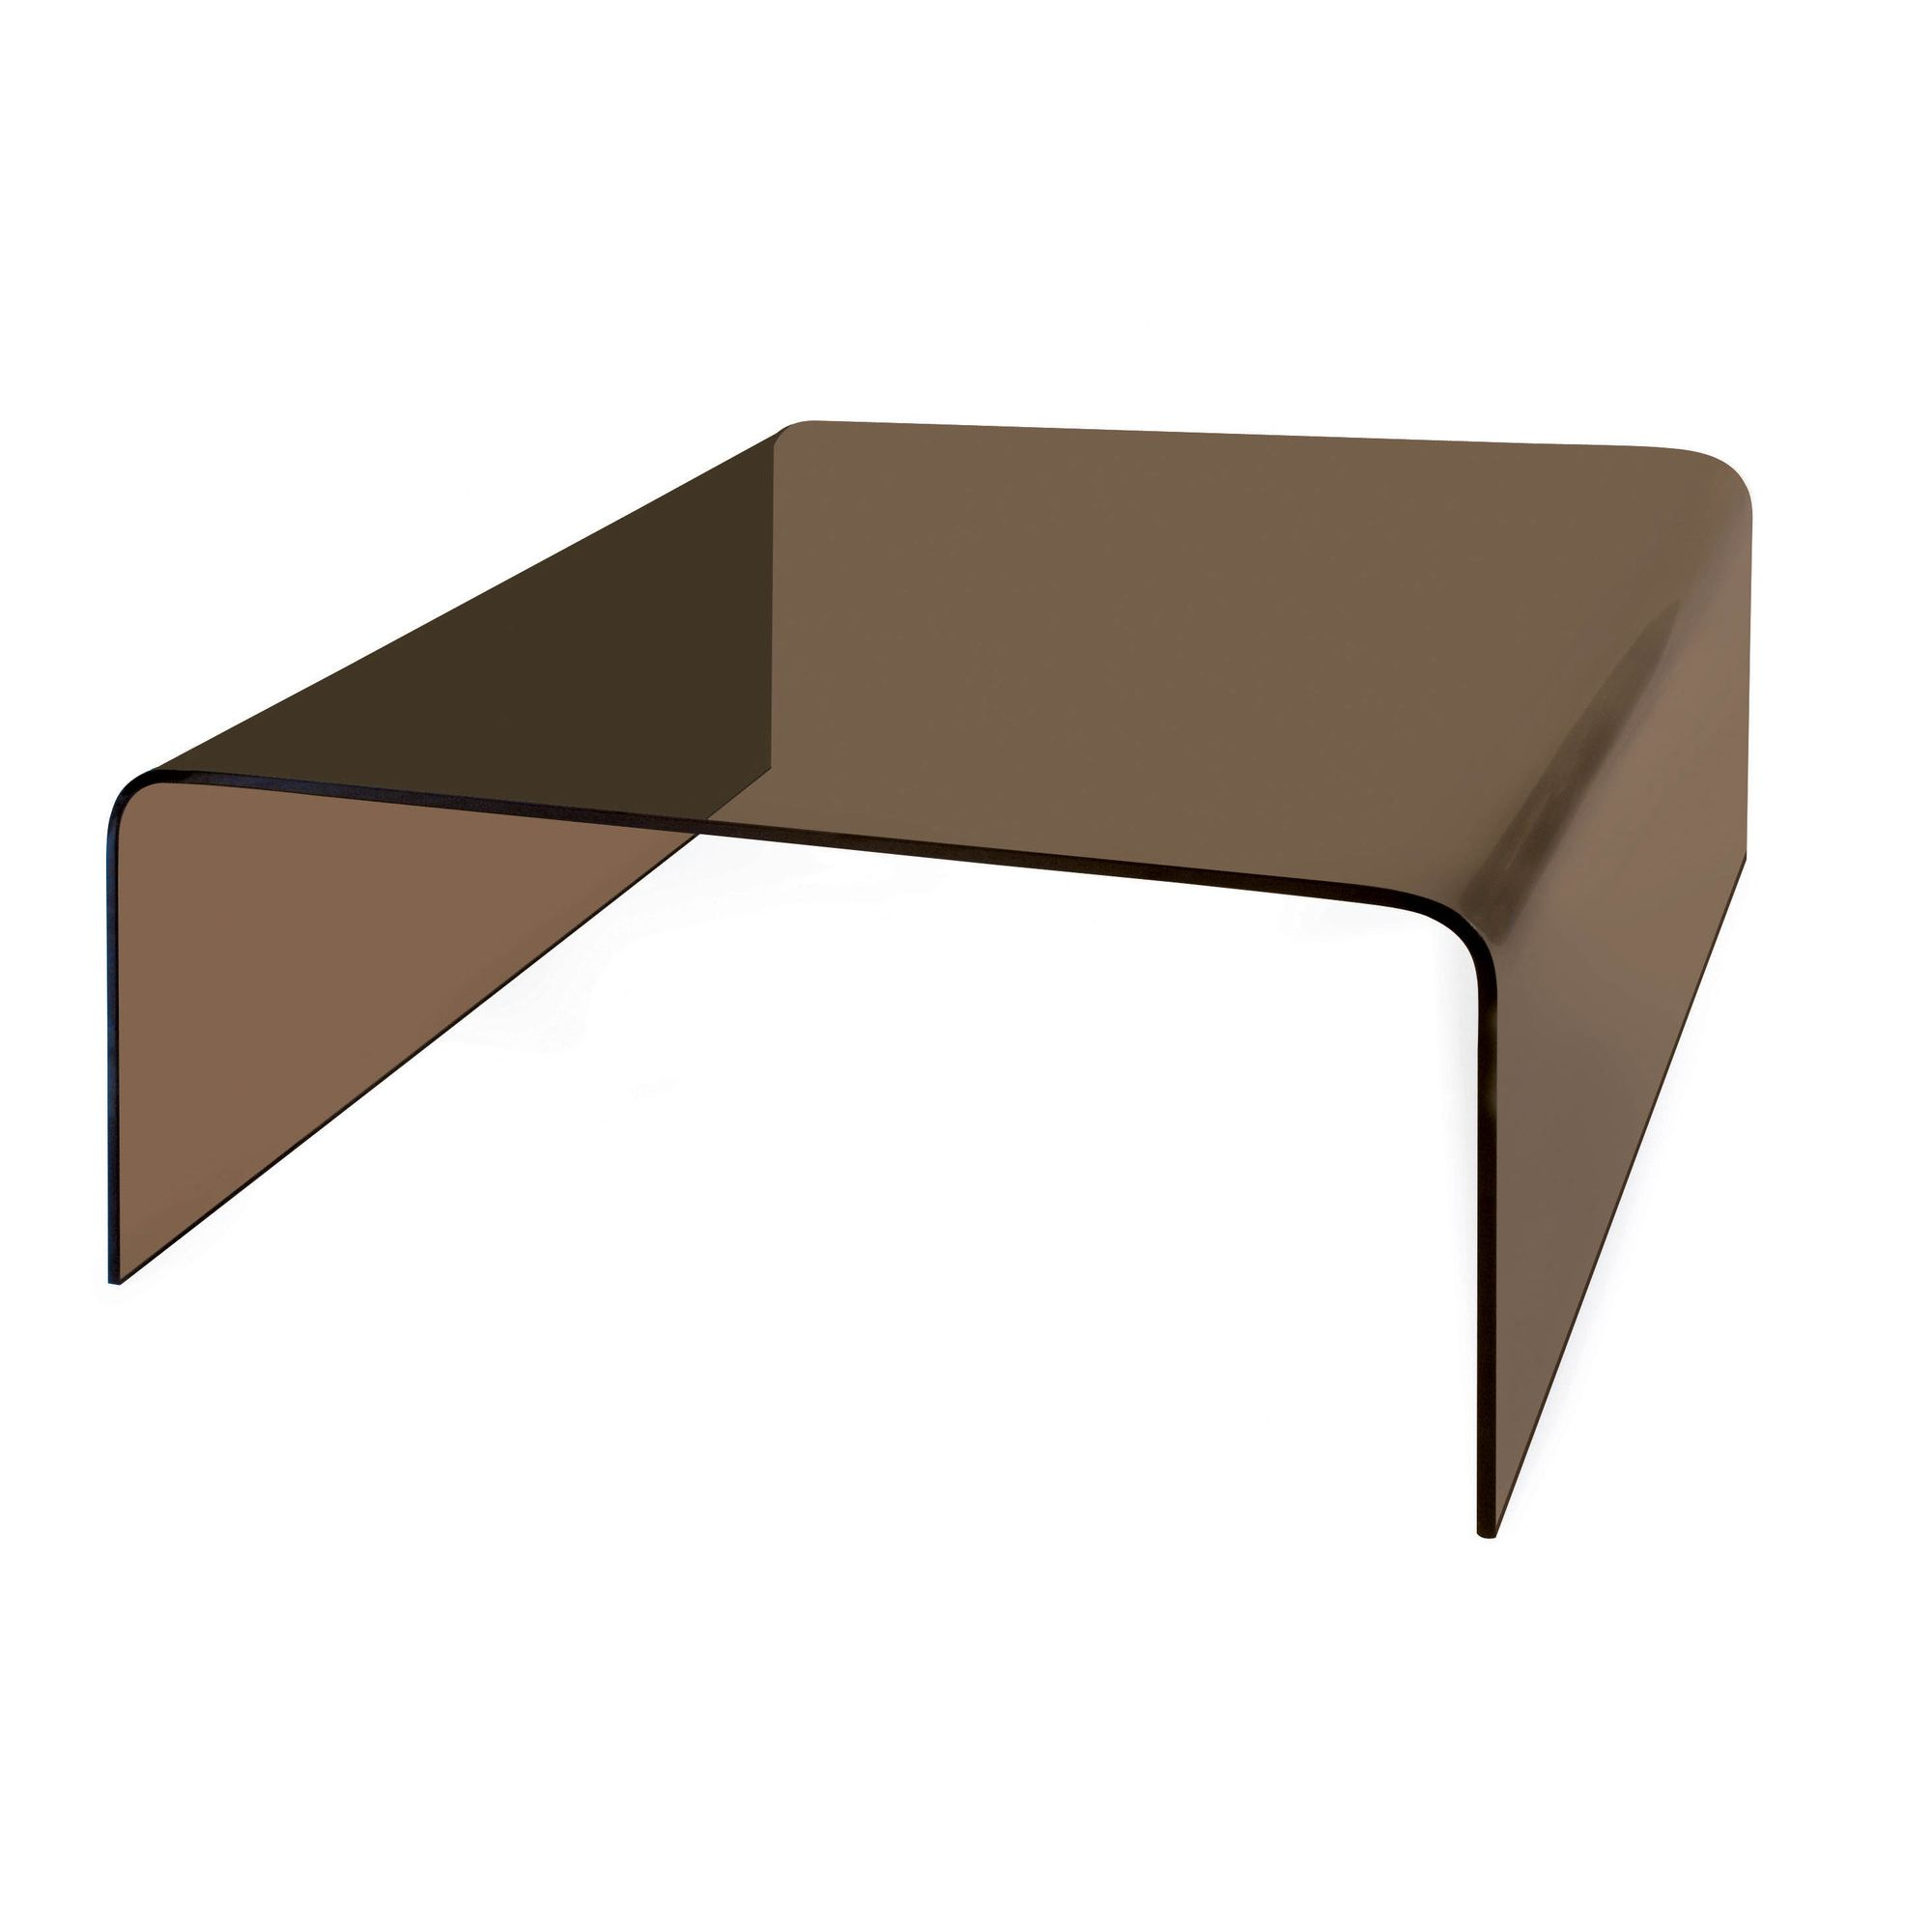 Premier Housewares Cascade Square Coffee Table - Smoked at Tescos Direct